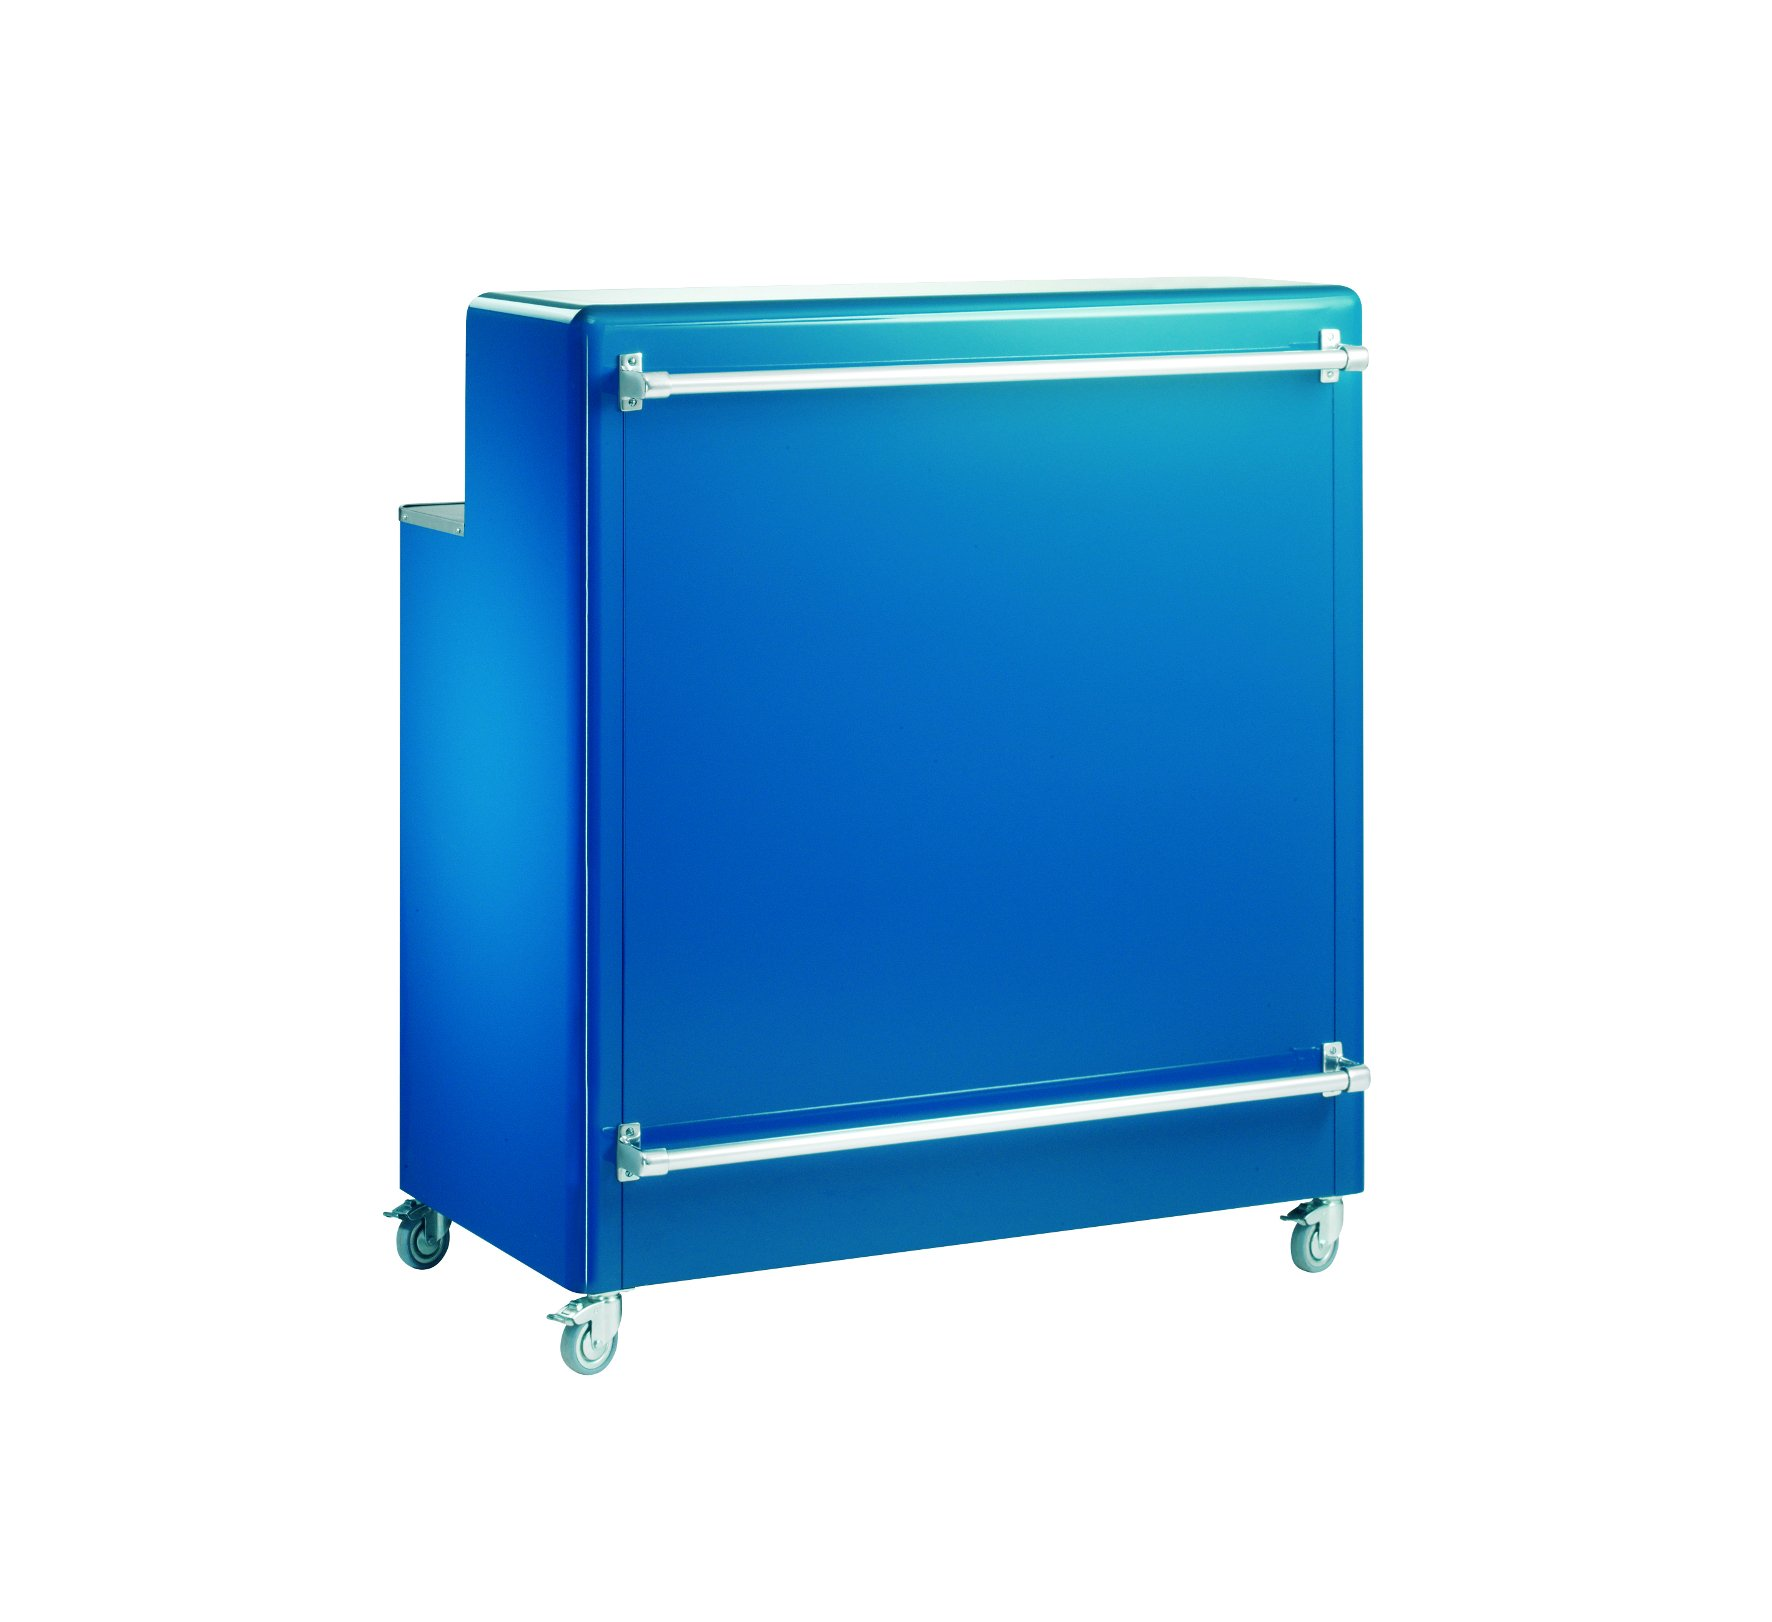 Classic Line Mobile Bar cabinet from Muller